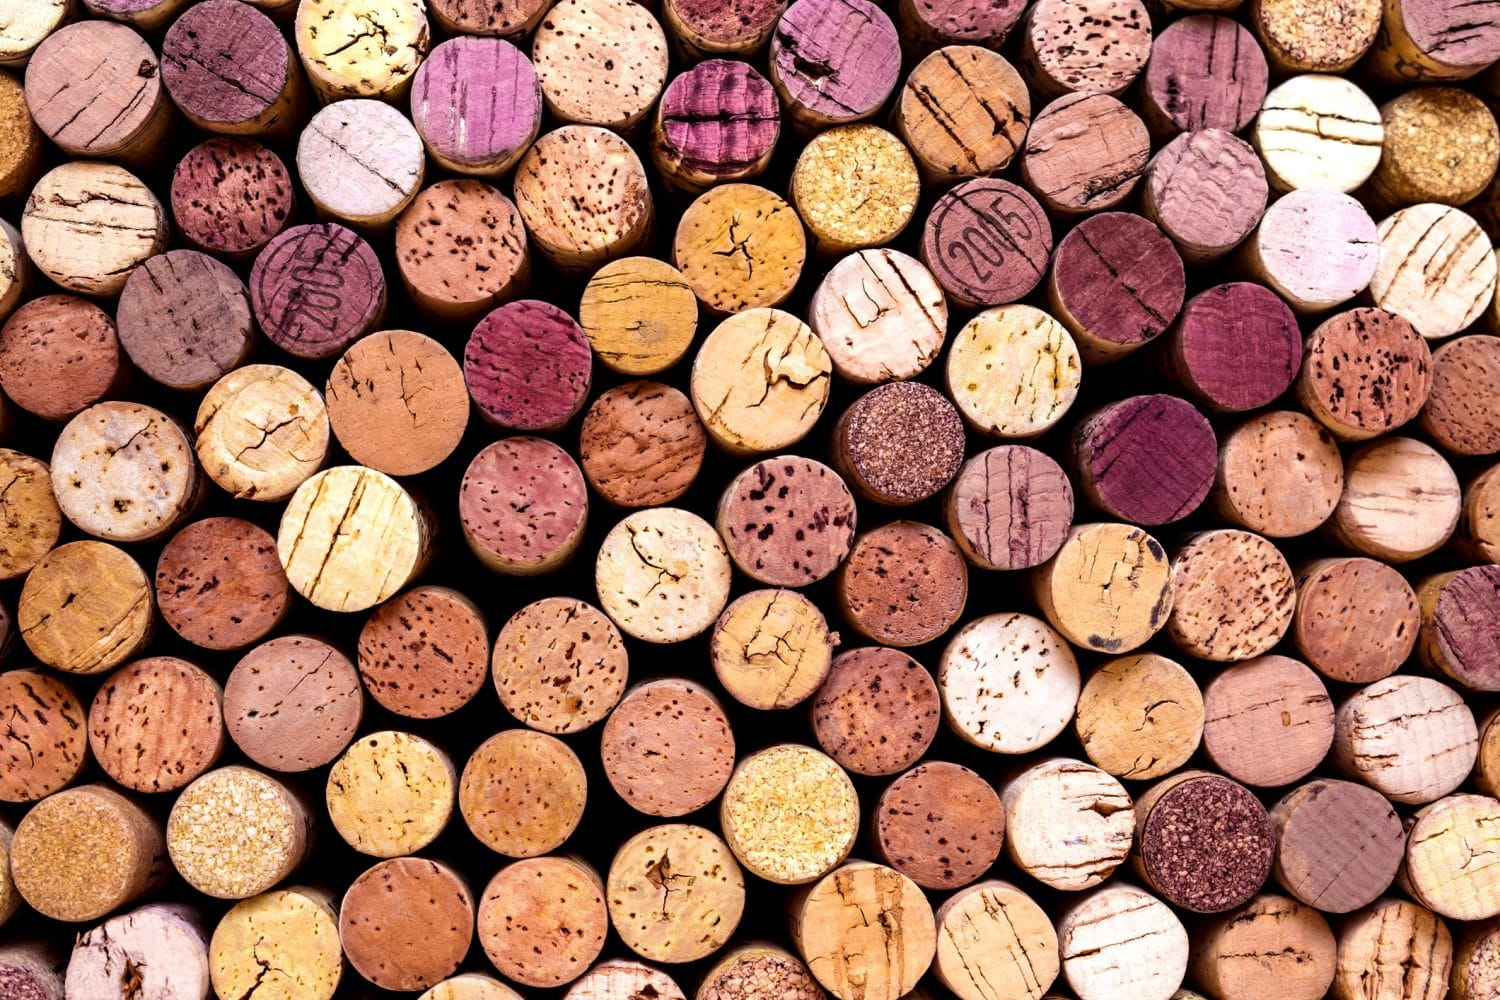 colorful wine corks from wineries near Mystic, CT